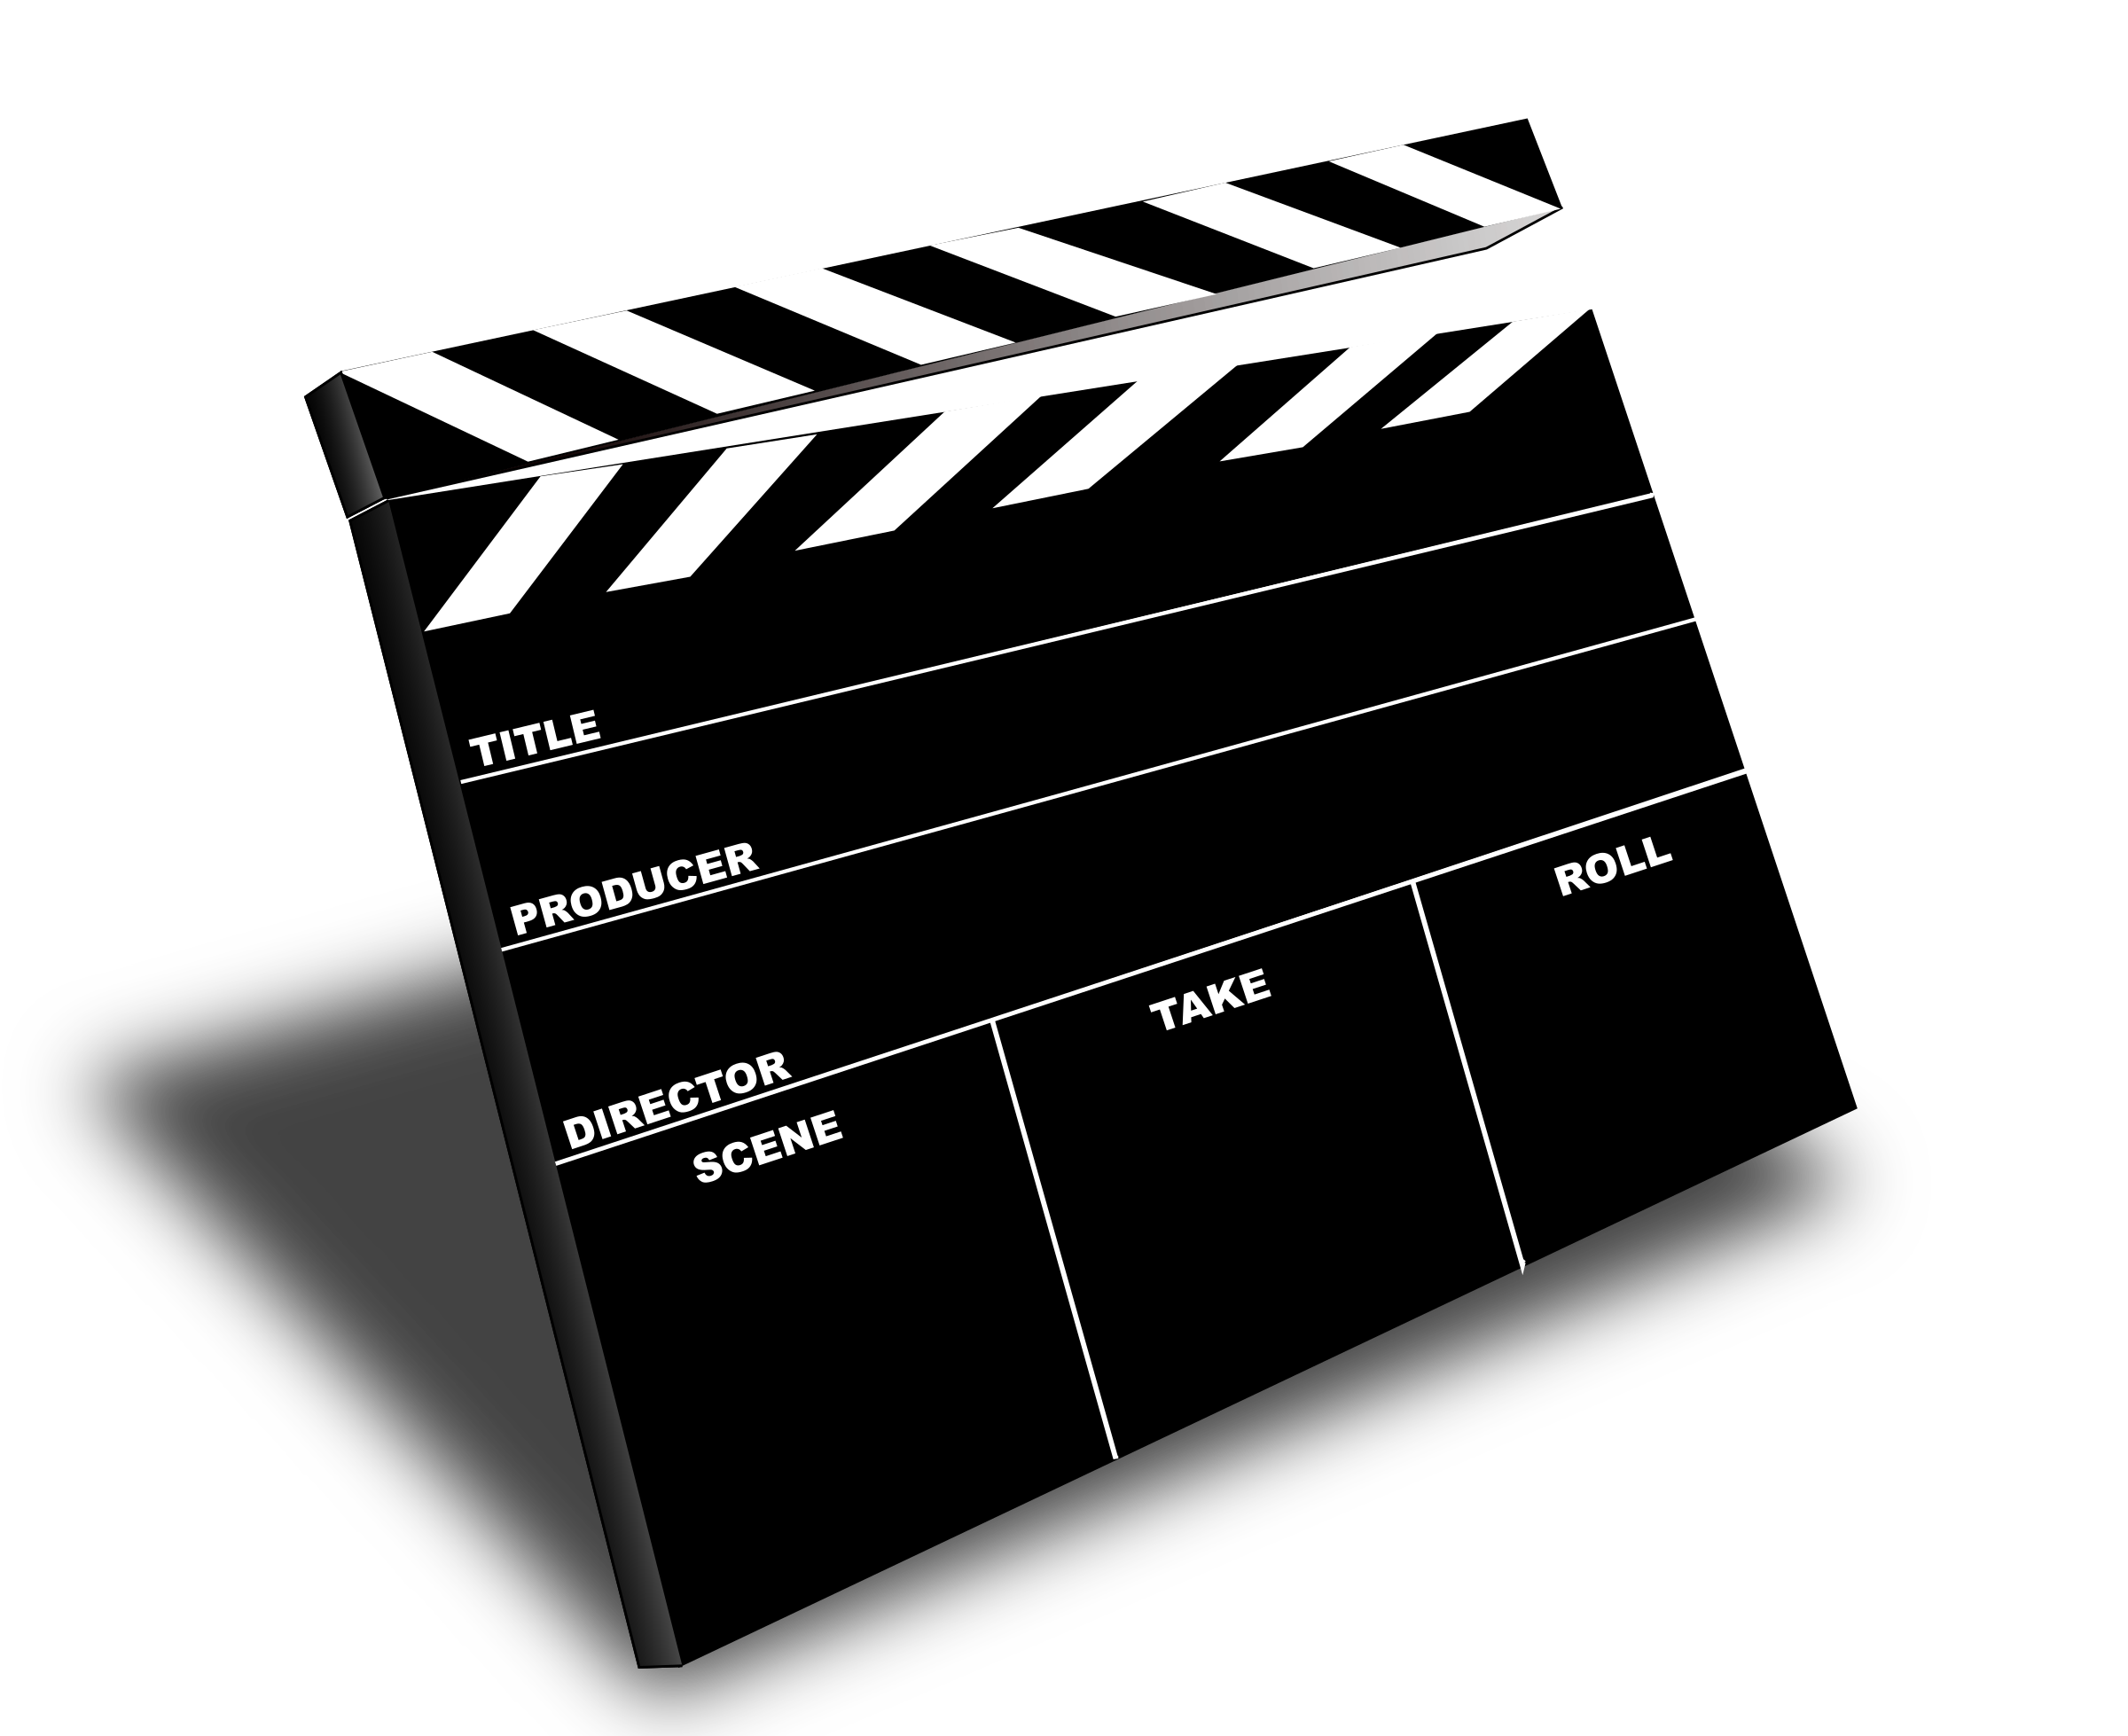 Youtube clipart movie. Scene slate icons png